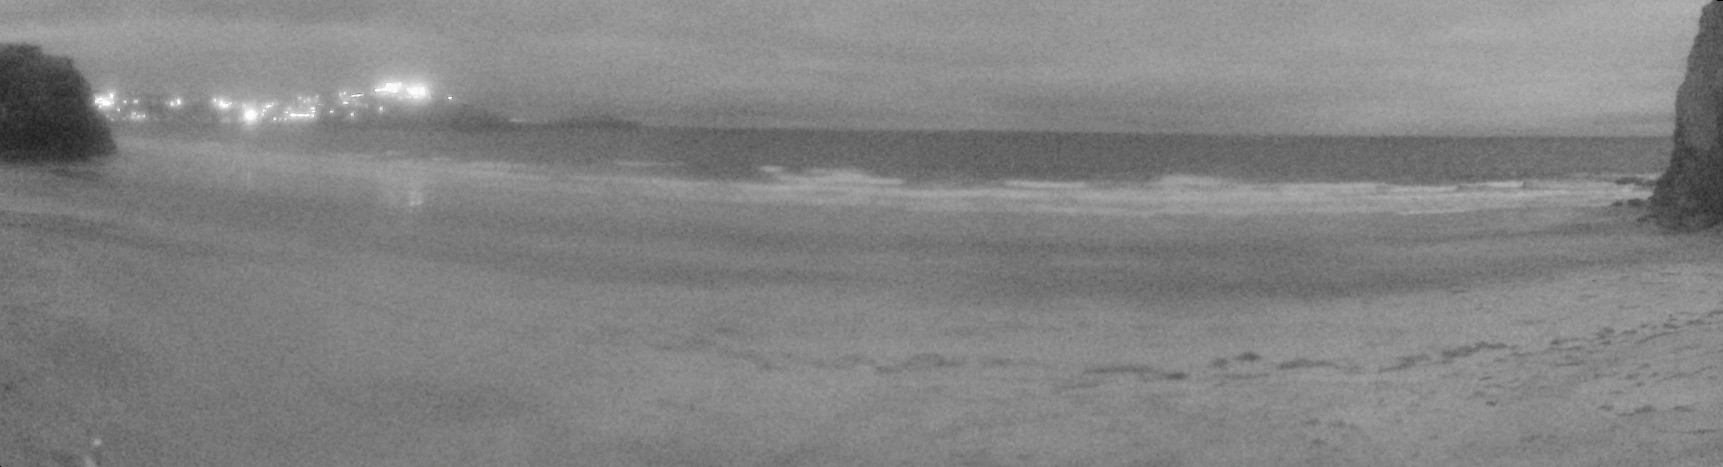 Latest webcam still for Newquay - Tolcarne Wedge